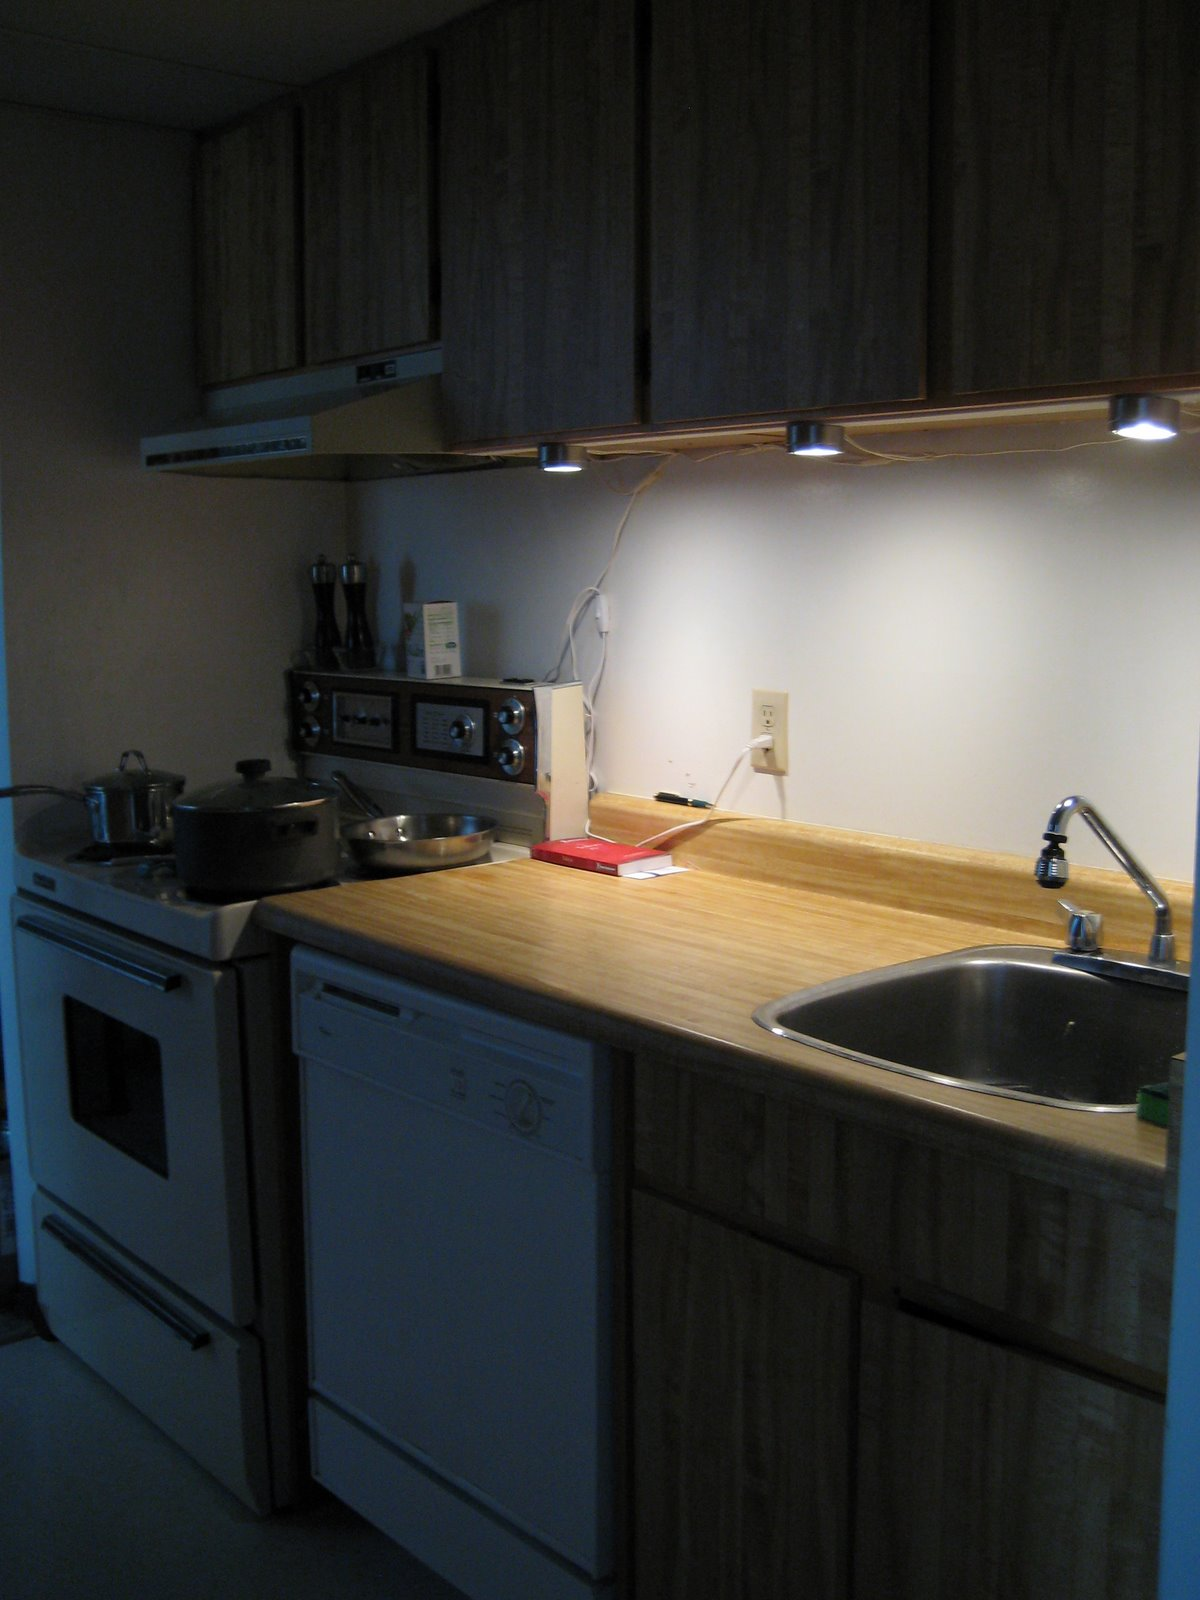 improve your kitchen counter lighting ikea kitchen lighting I then attached the halogen portion of the lights clipped the wires and switches up and out of the way and now have some nice task lighting